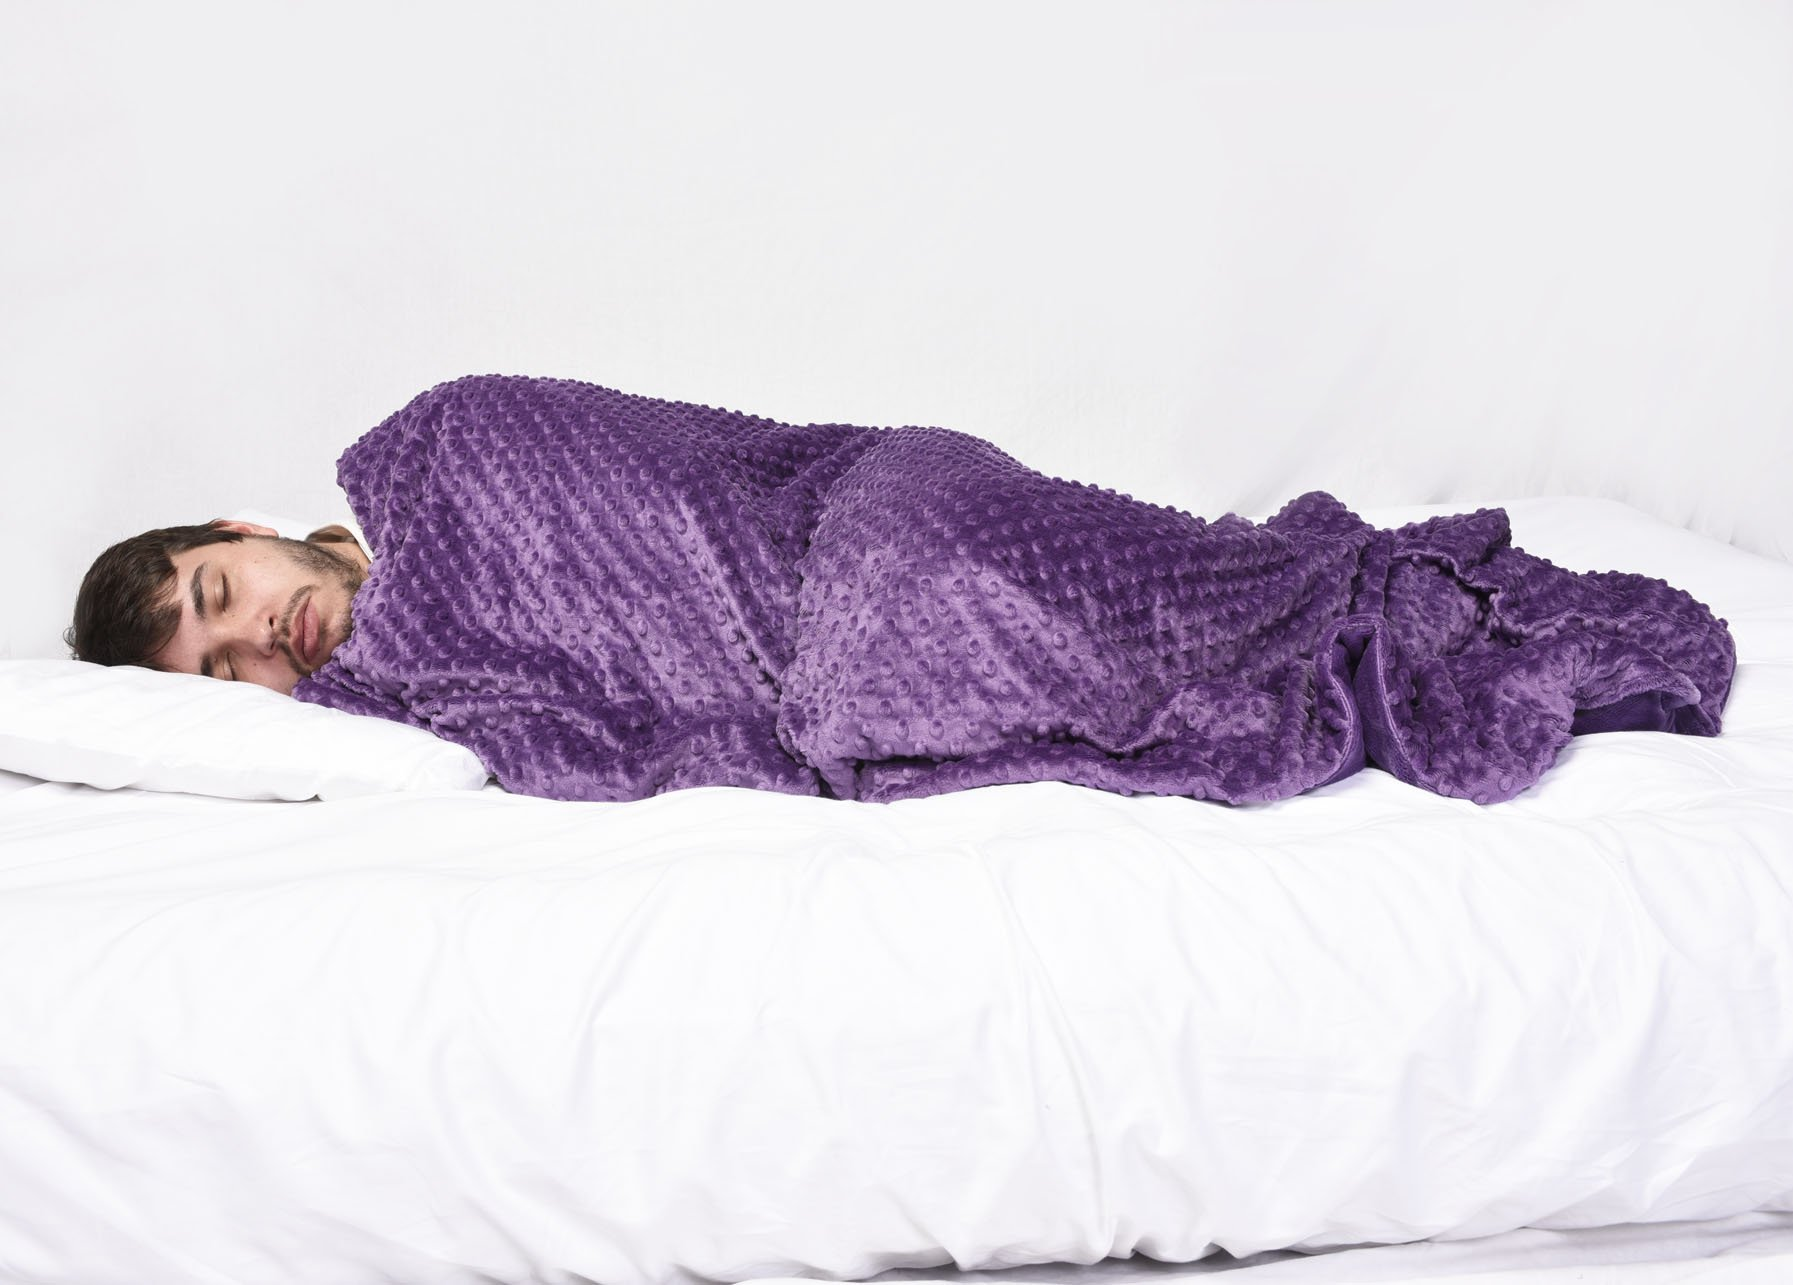 Creature Commforts Weighted 15lb Security Blanket for Adults and Teens - Great for Stress, Anxiety, ADHD, Autism, PTSD, Insomnia Relief, Removeable Comforter Cover, Extra Large, 40 x 60 (Purple)